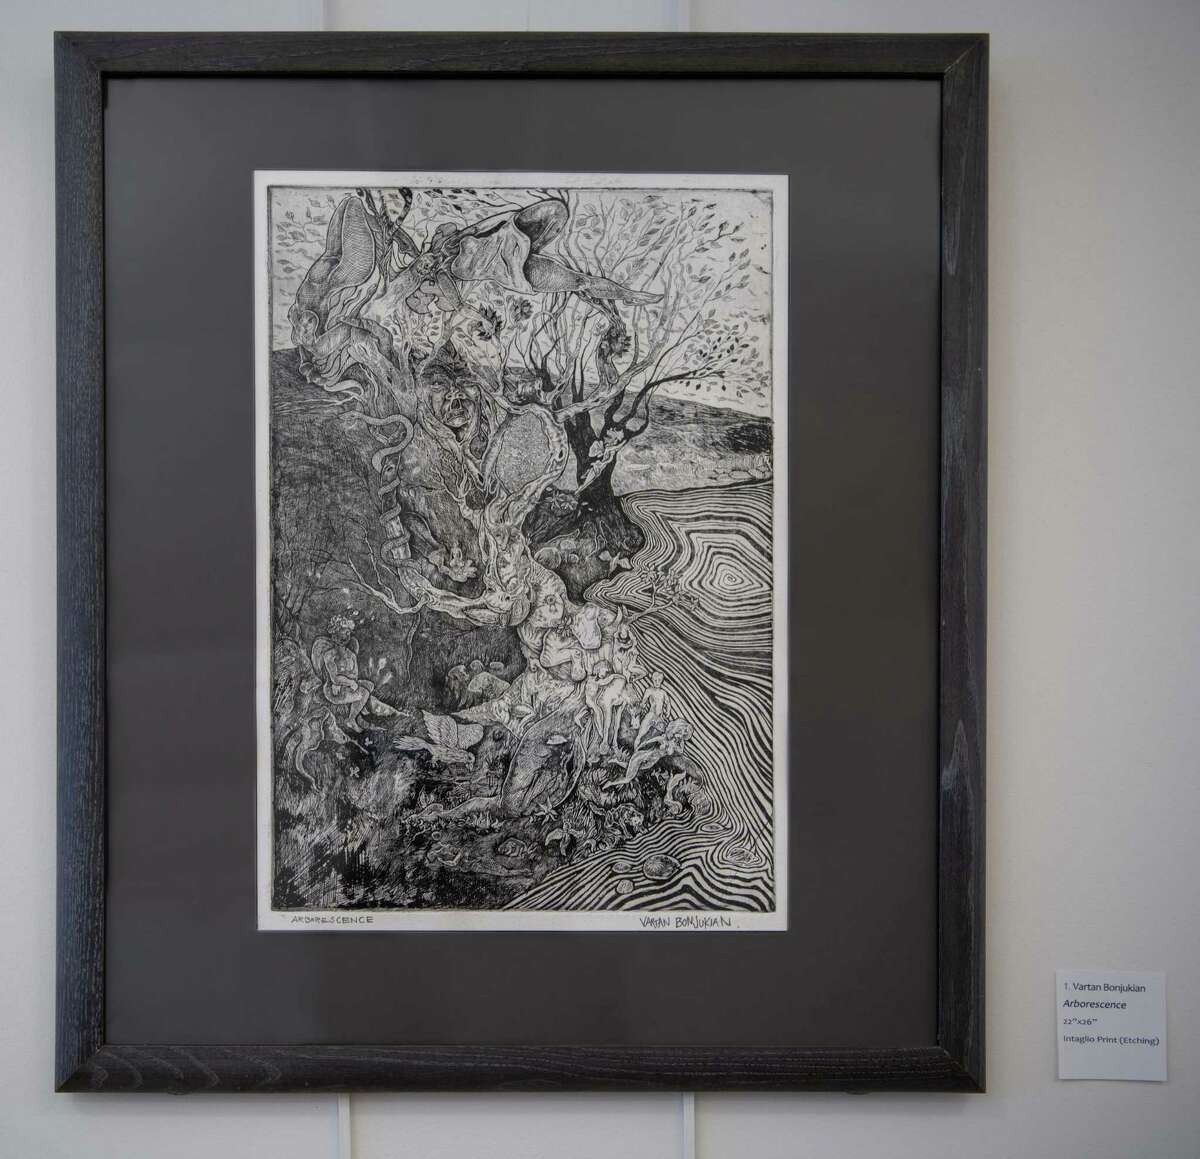 This work by Vartan D. Bonjukian is titled Aborescence. (Sacandaga Valley Arts Network)